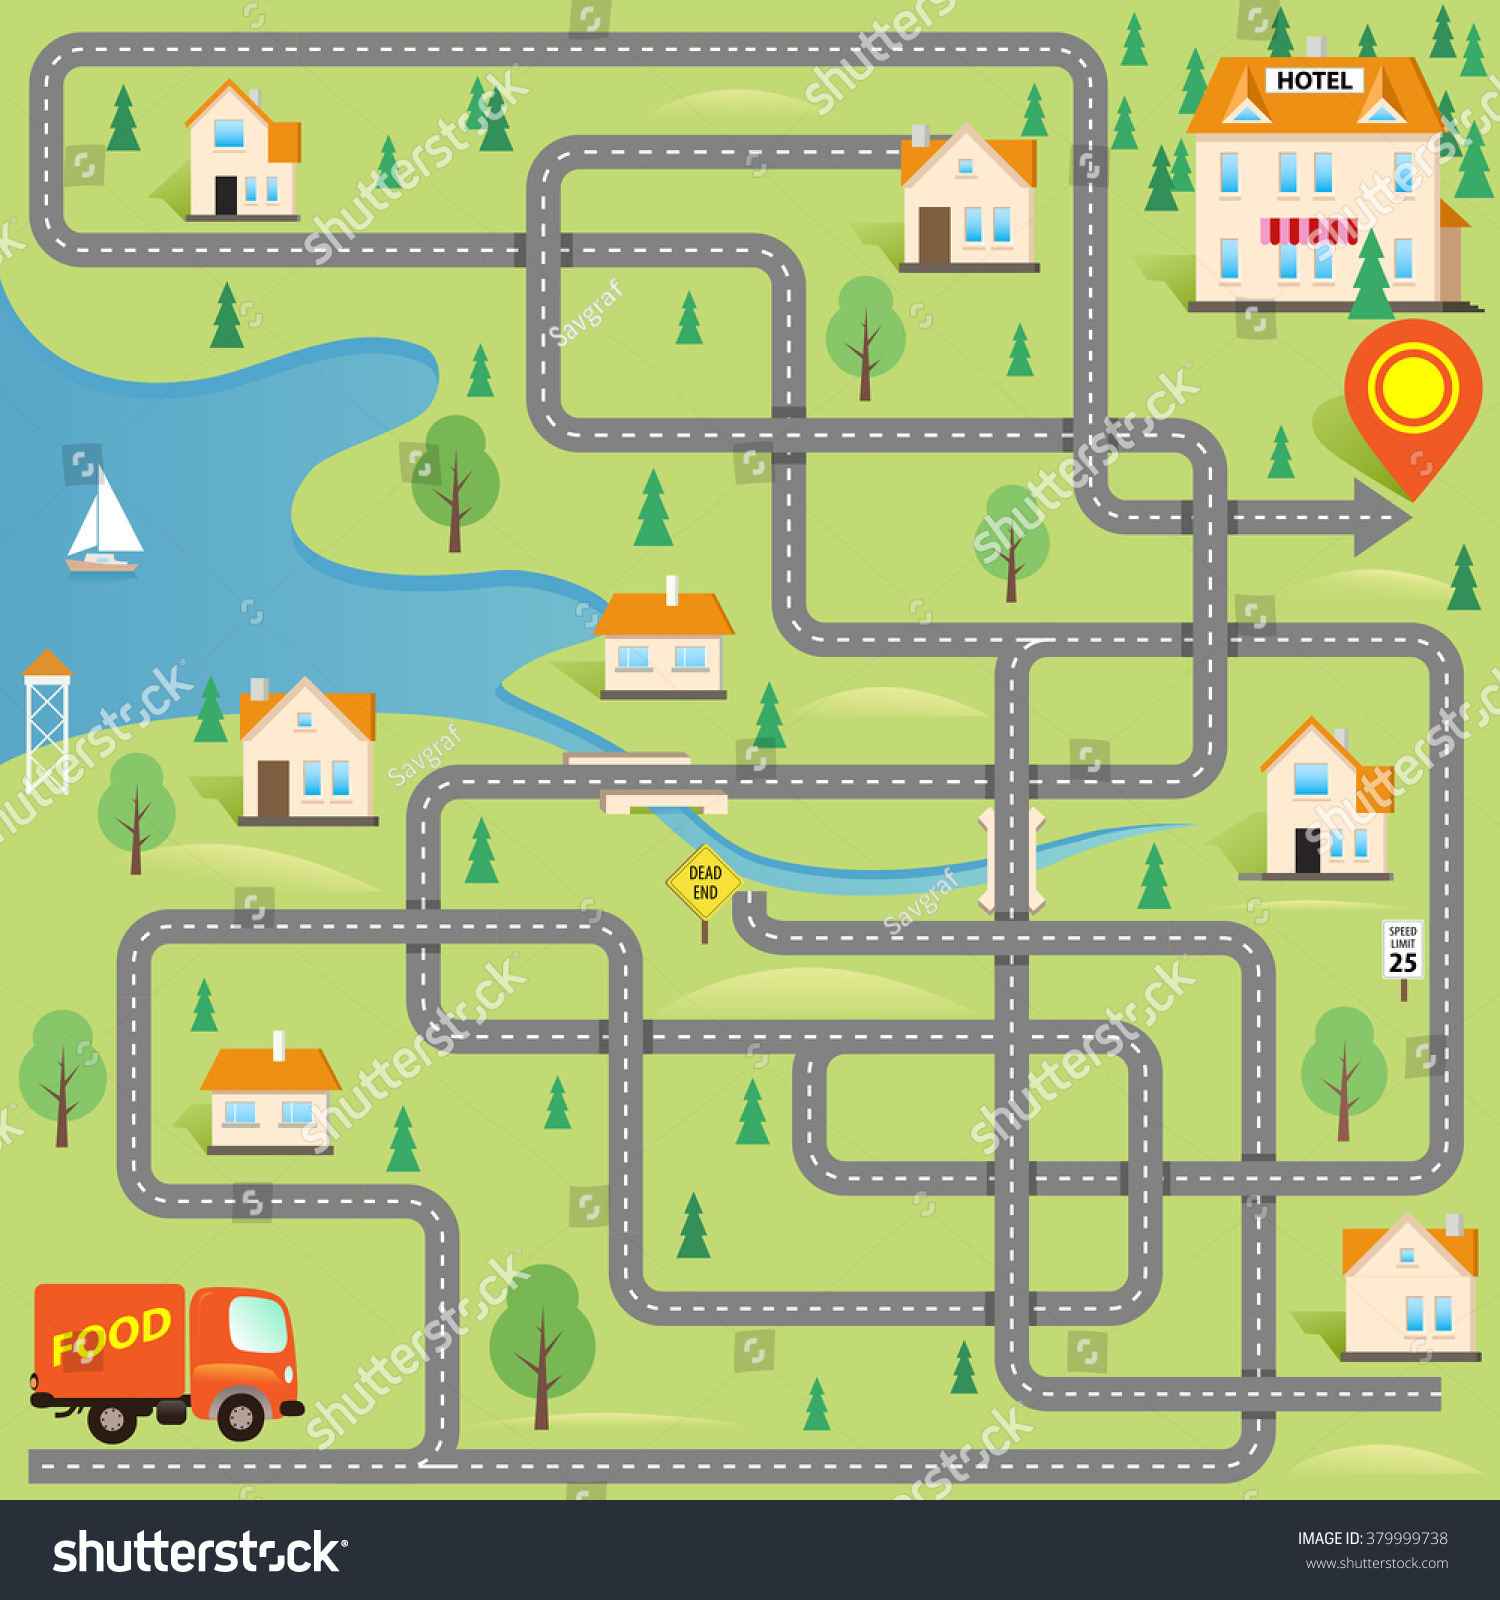 Layout Maker For House Vector Funny Maze Game Help Delivery Stock Vector